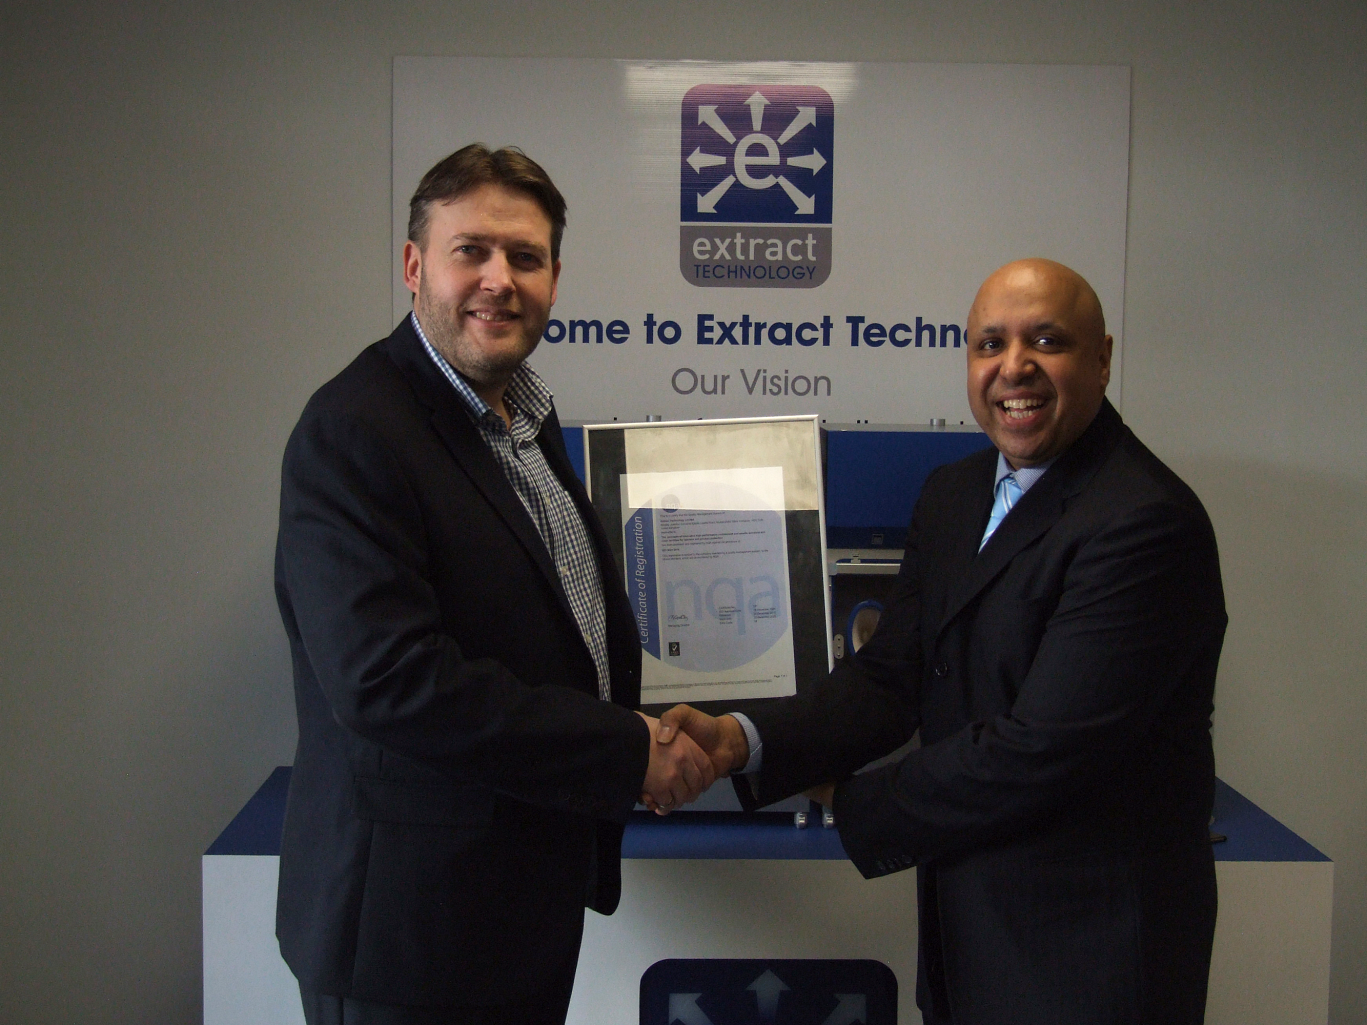 Extract Technology Ltd awarded ISO 9001:2015